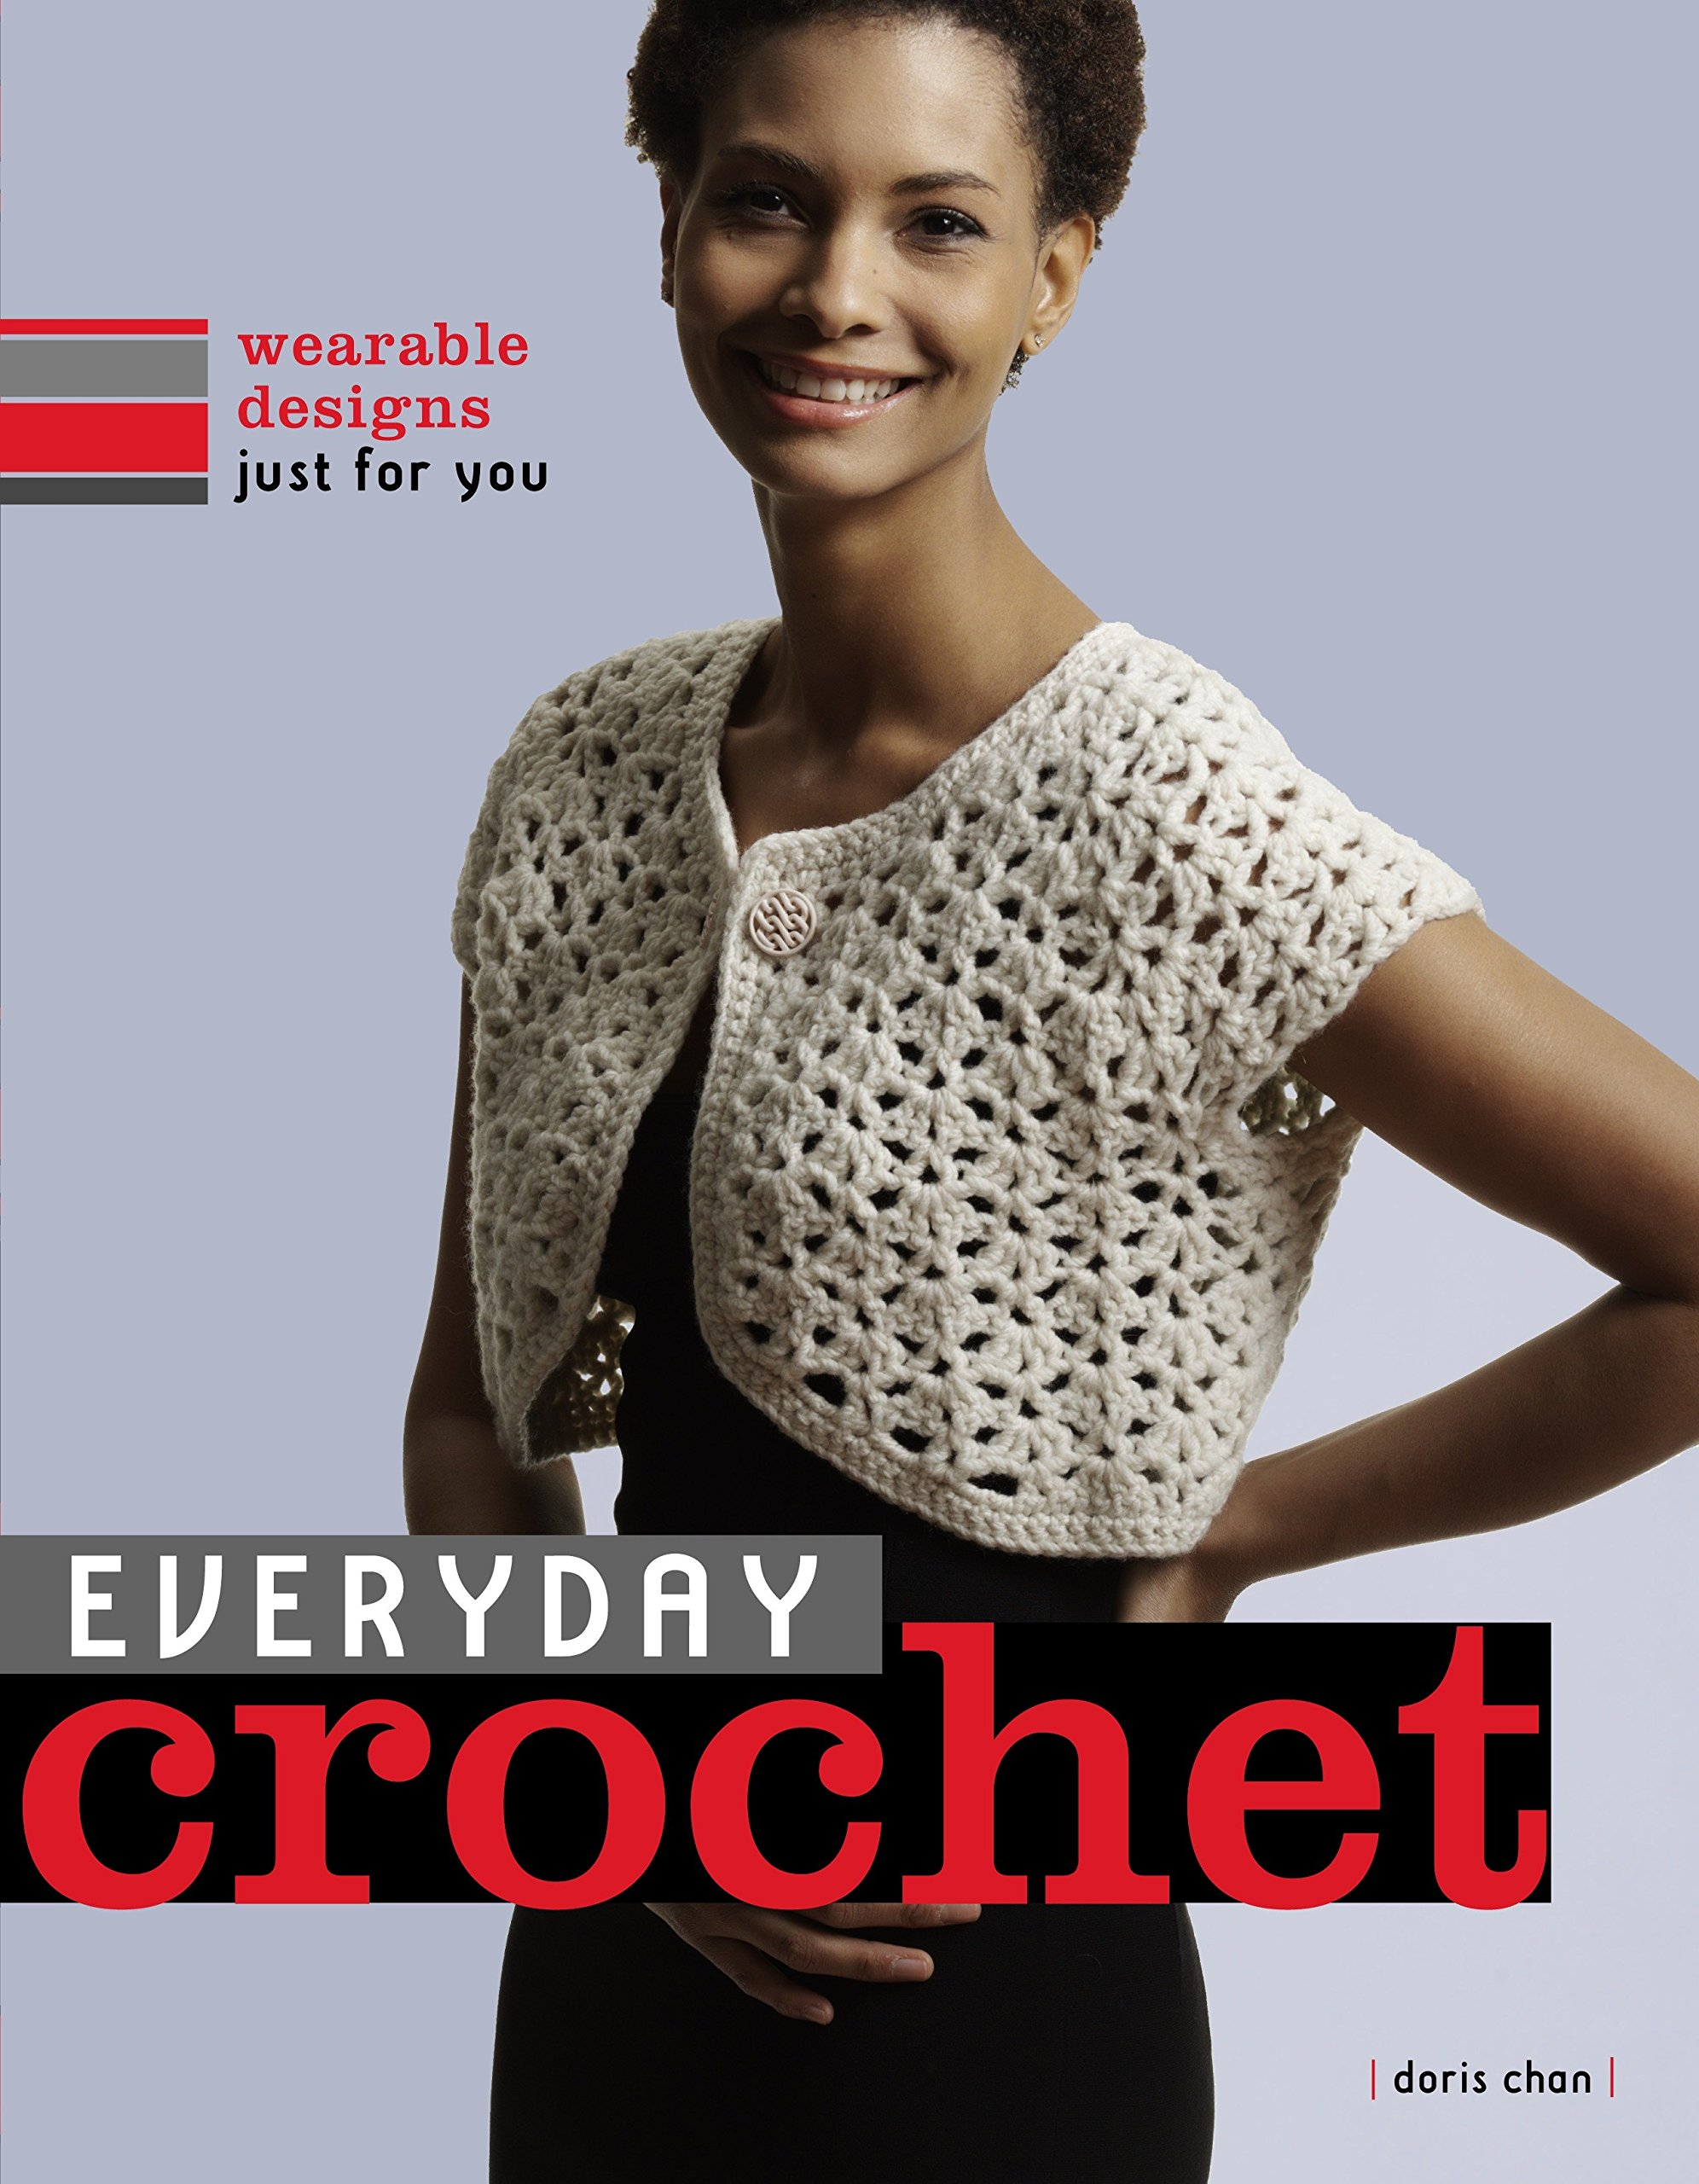 Everyday Crochet: Wearable Designs Just for You: Doris Chan: 9780307353733:  Amazon.com: Books